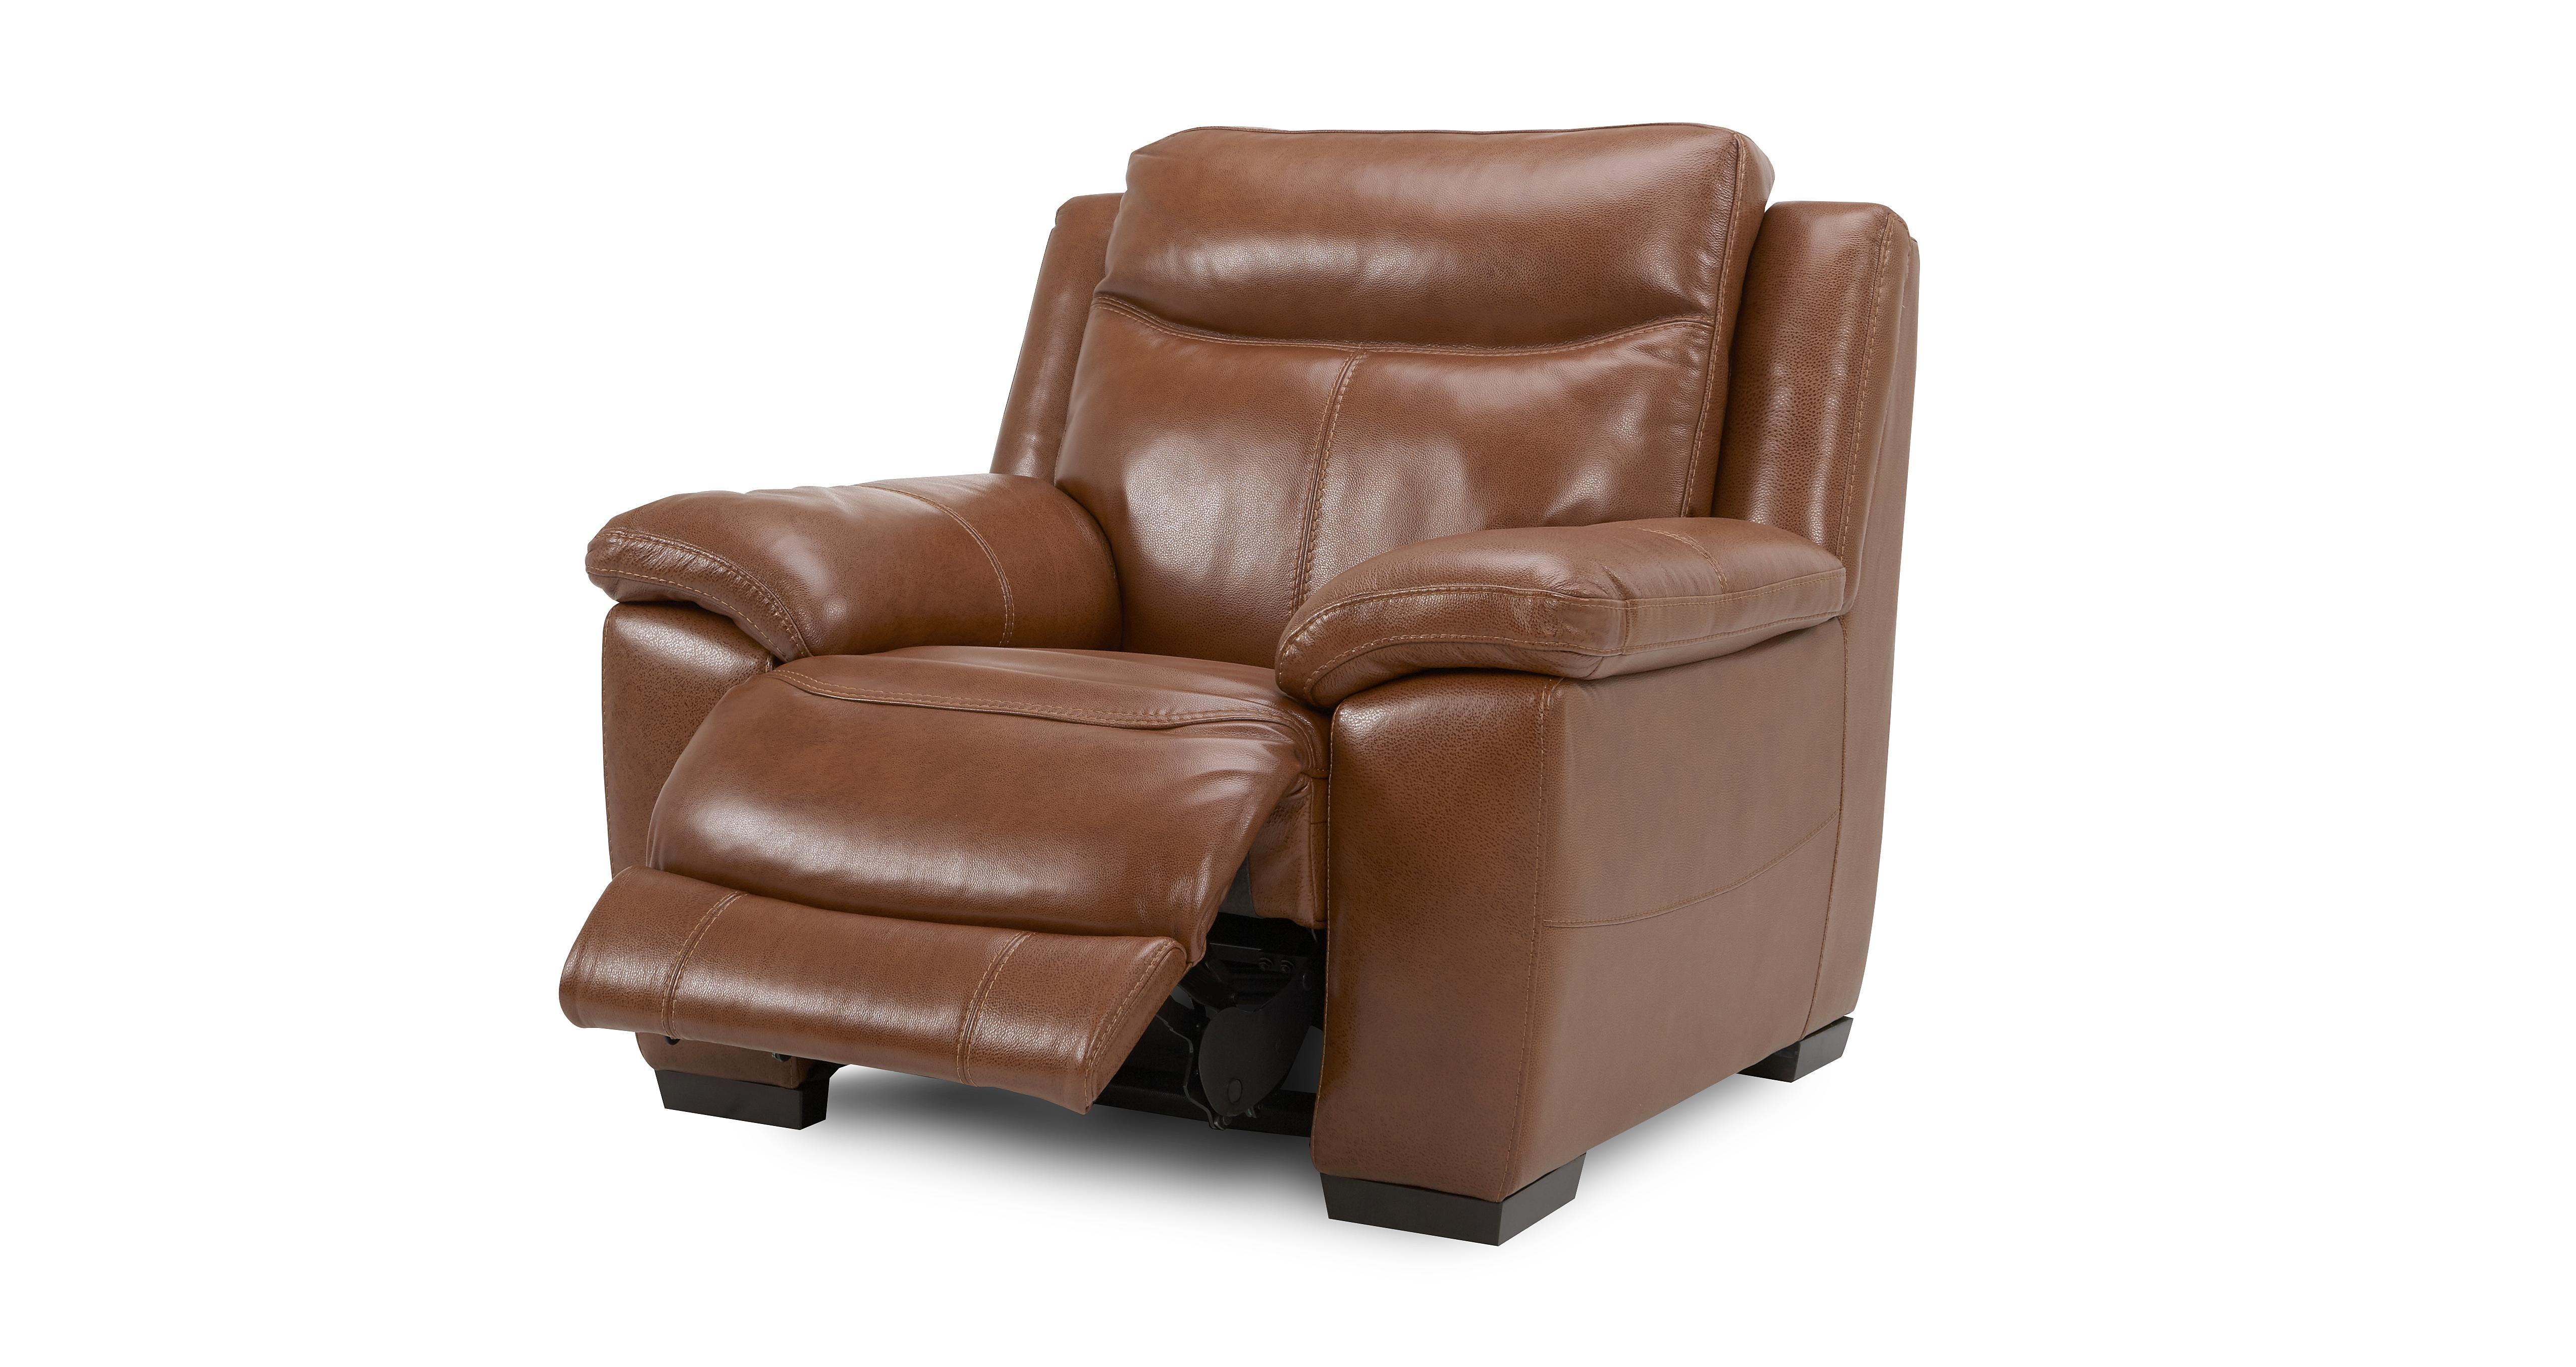 Electric Recliner Leather Chairs Liaison Electric Recliner Chair Brazil With Leather Look